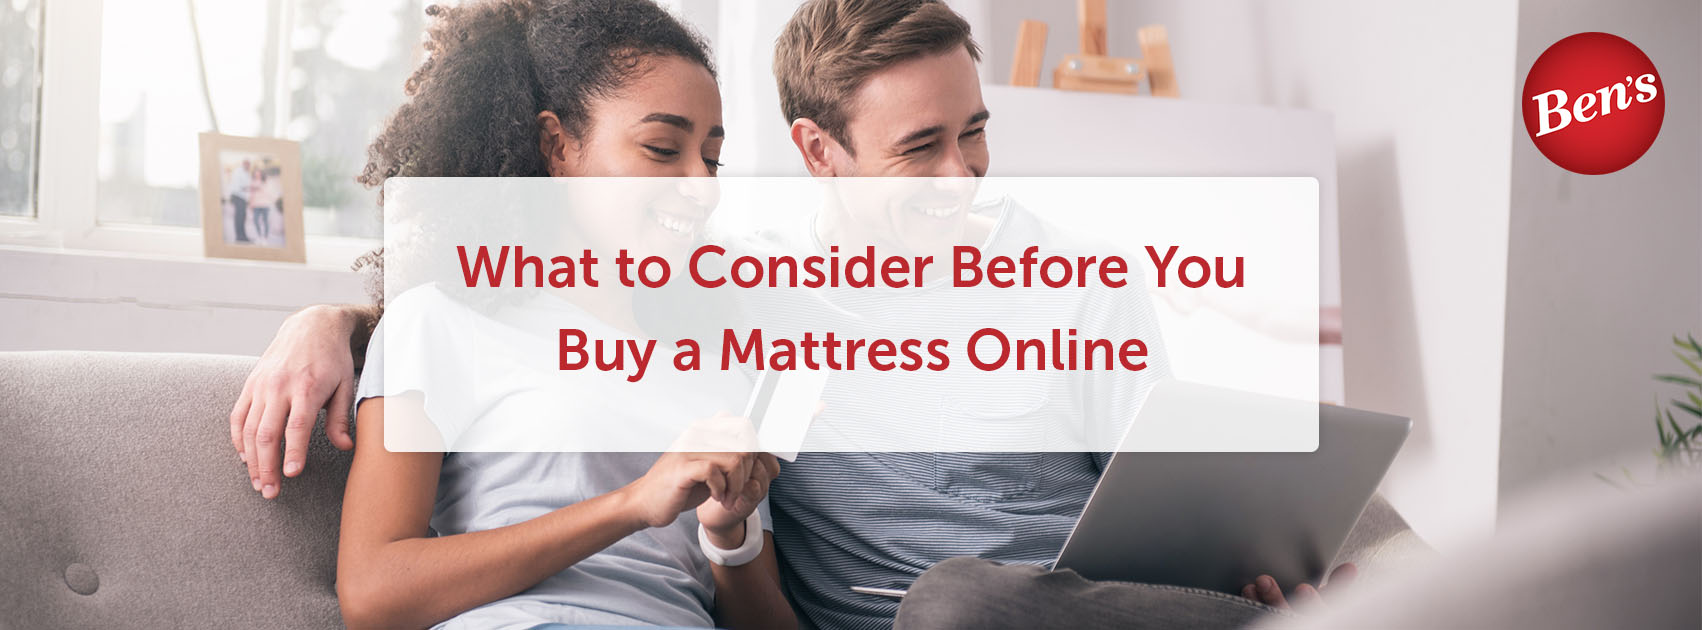 Couple purchasing a mattress online.